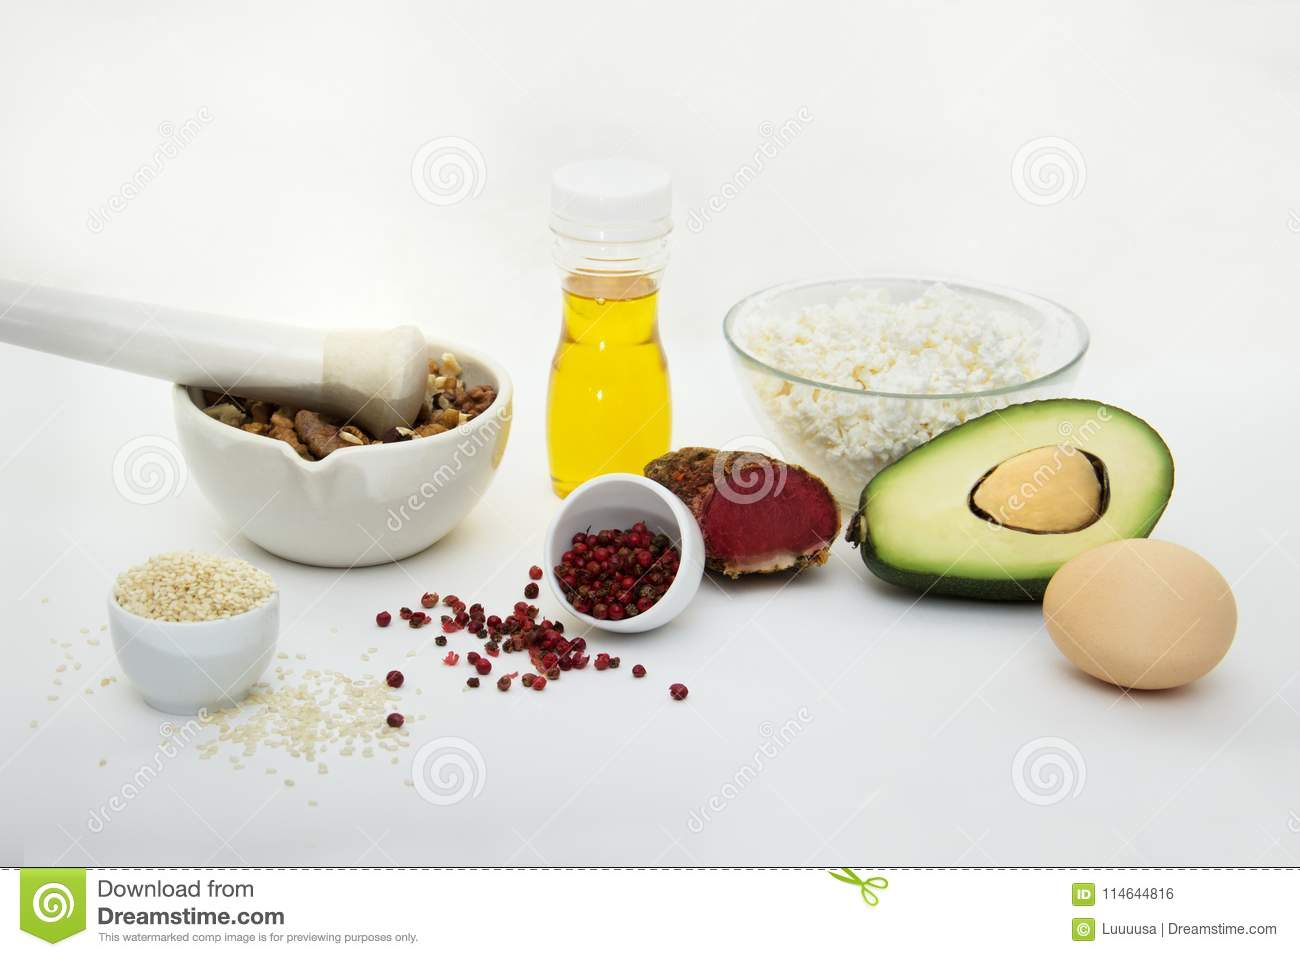 Products that can be eaten with a ketogenic diet., low carb, high good fat. Concept keto diet for health and weight loss.